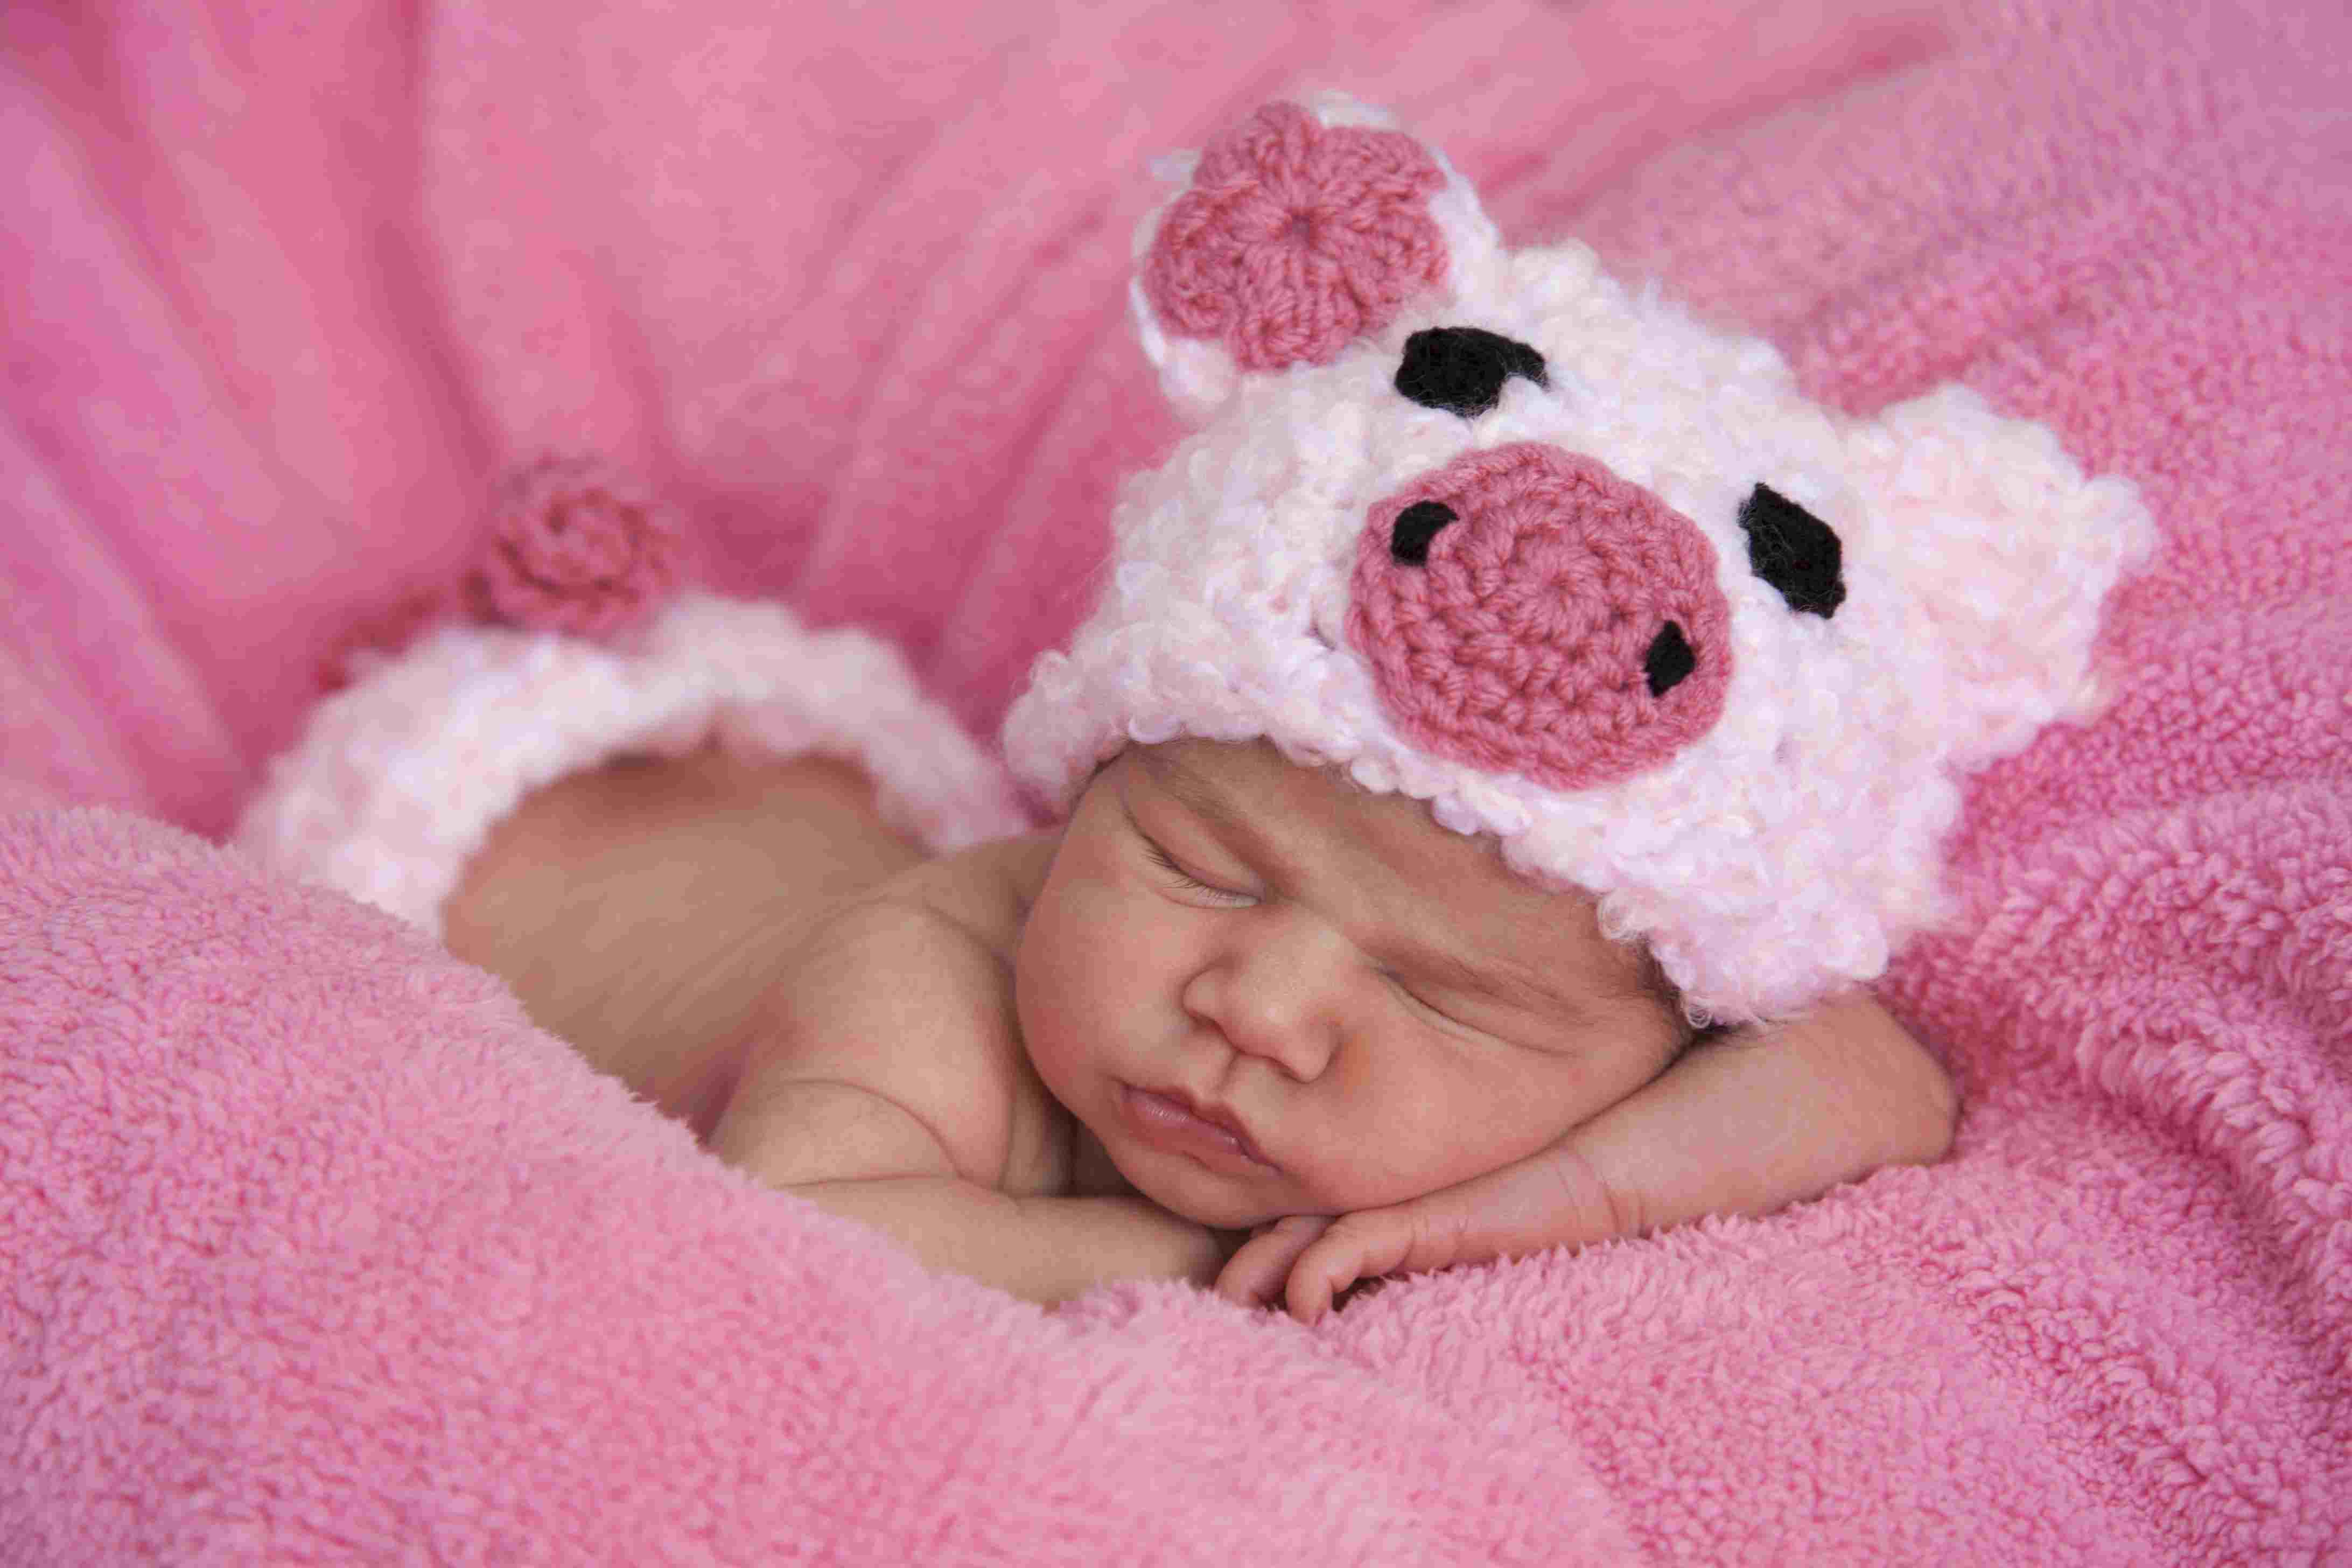 Newborn baby girl dressed in pink piggy outfit